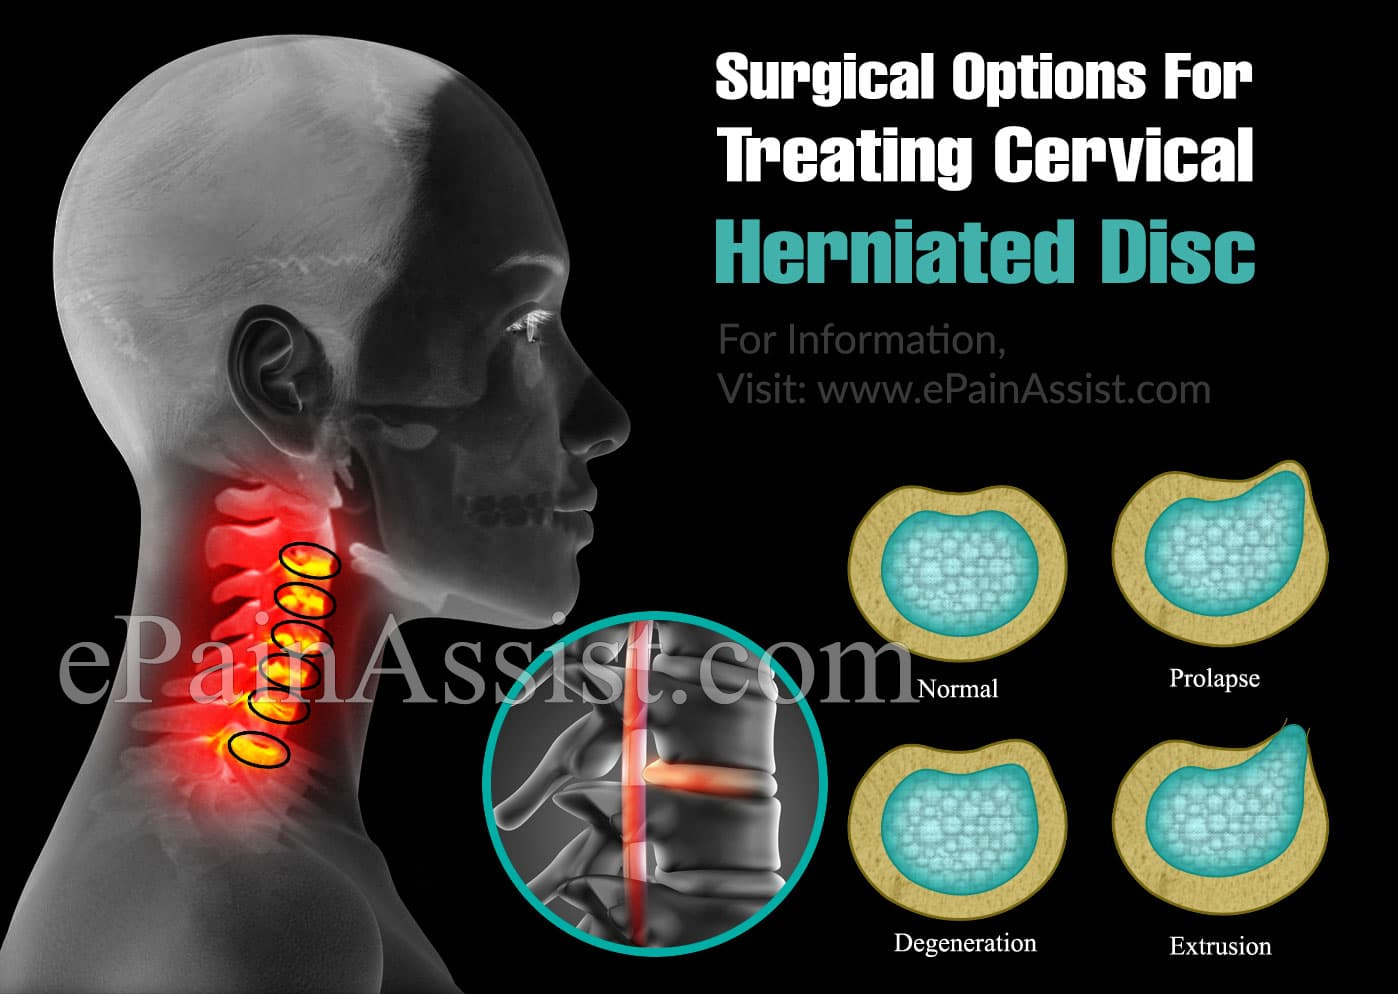 Surgical Options For Treating Cervical Herniated Disc